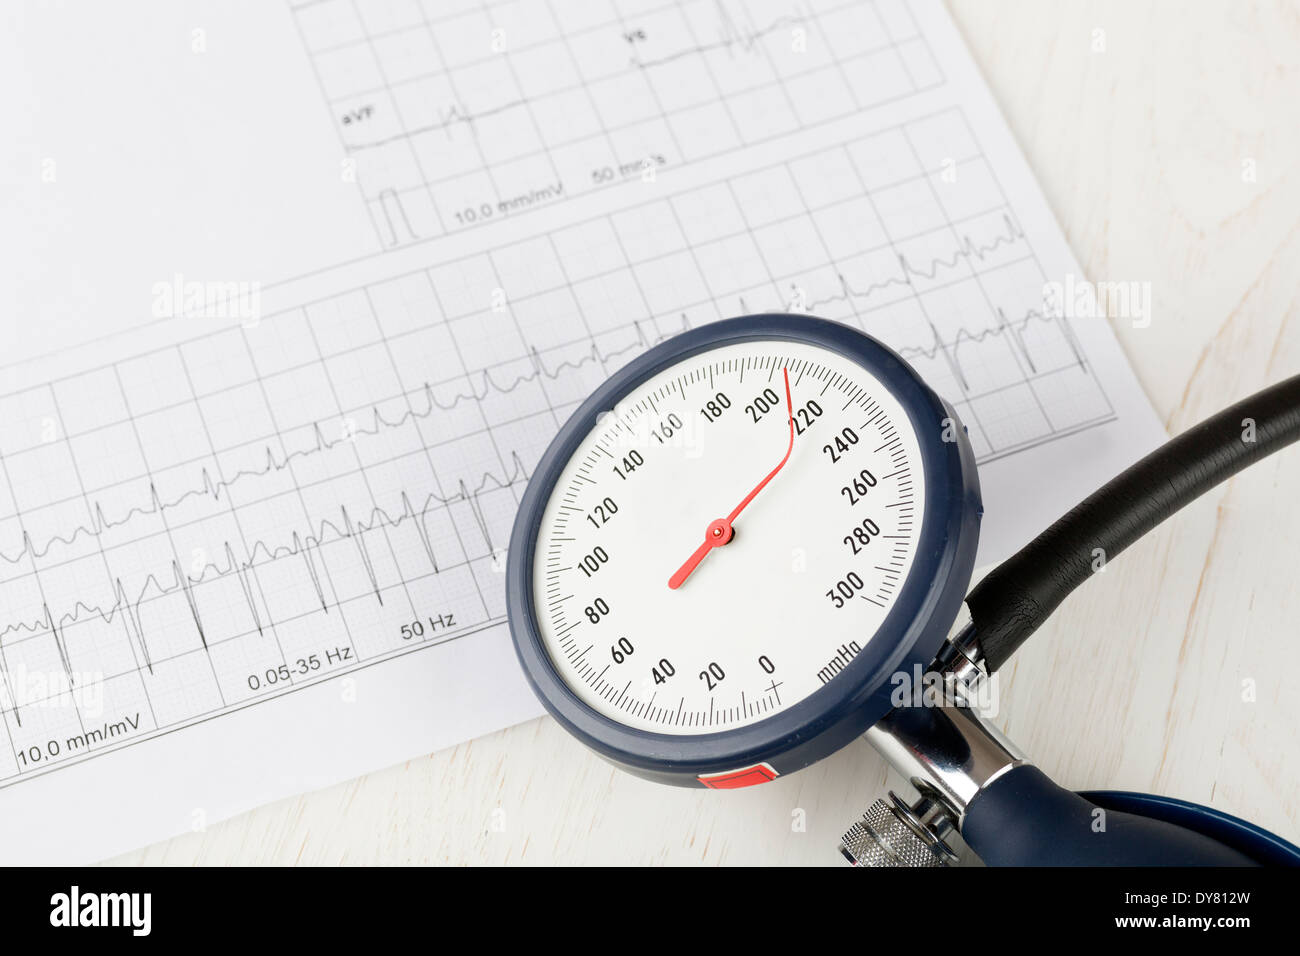 Blood pressure gauge with twisted needle, in the background a ecg, close up - Stock Image